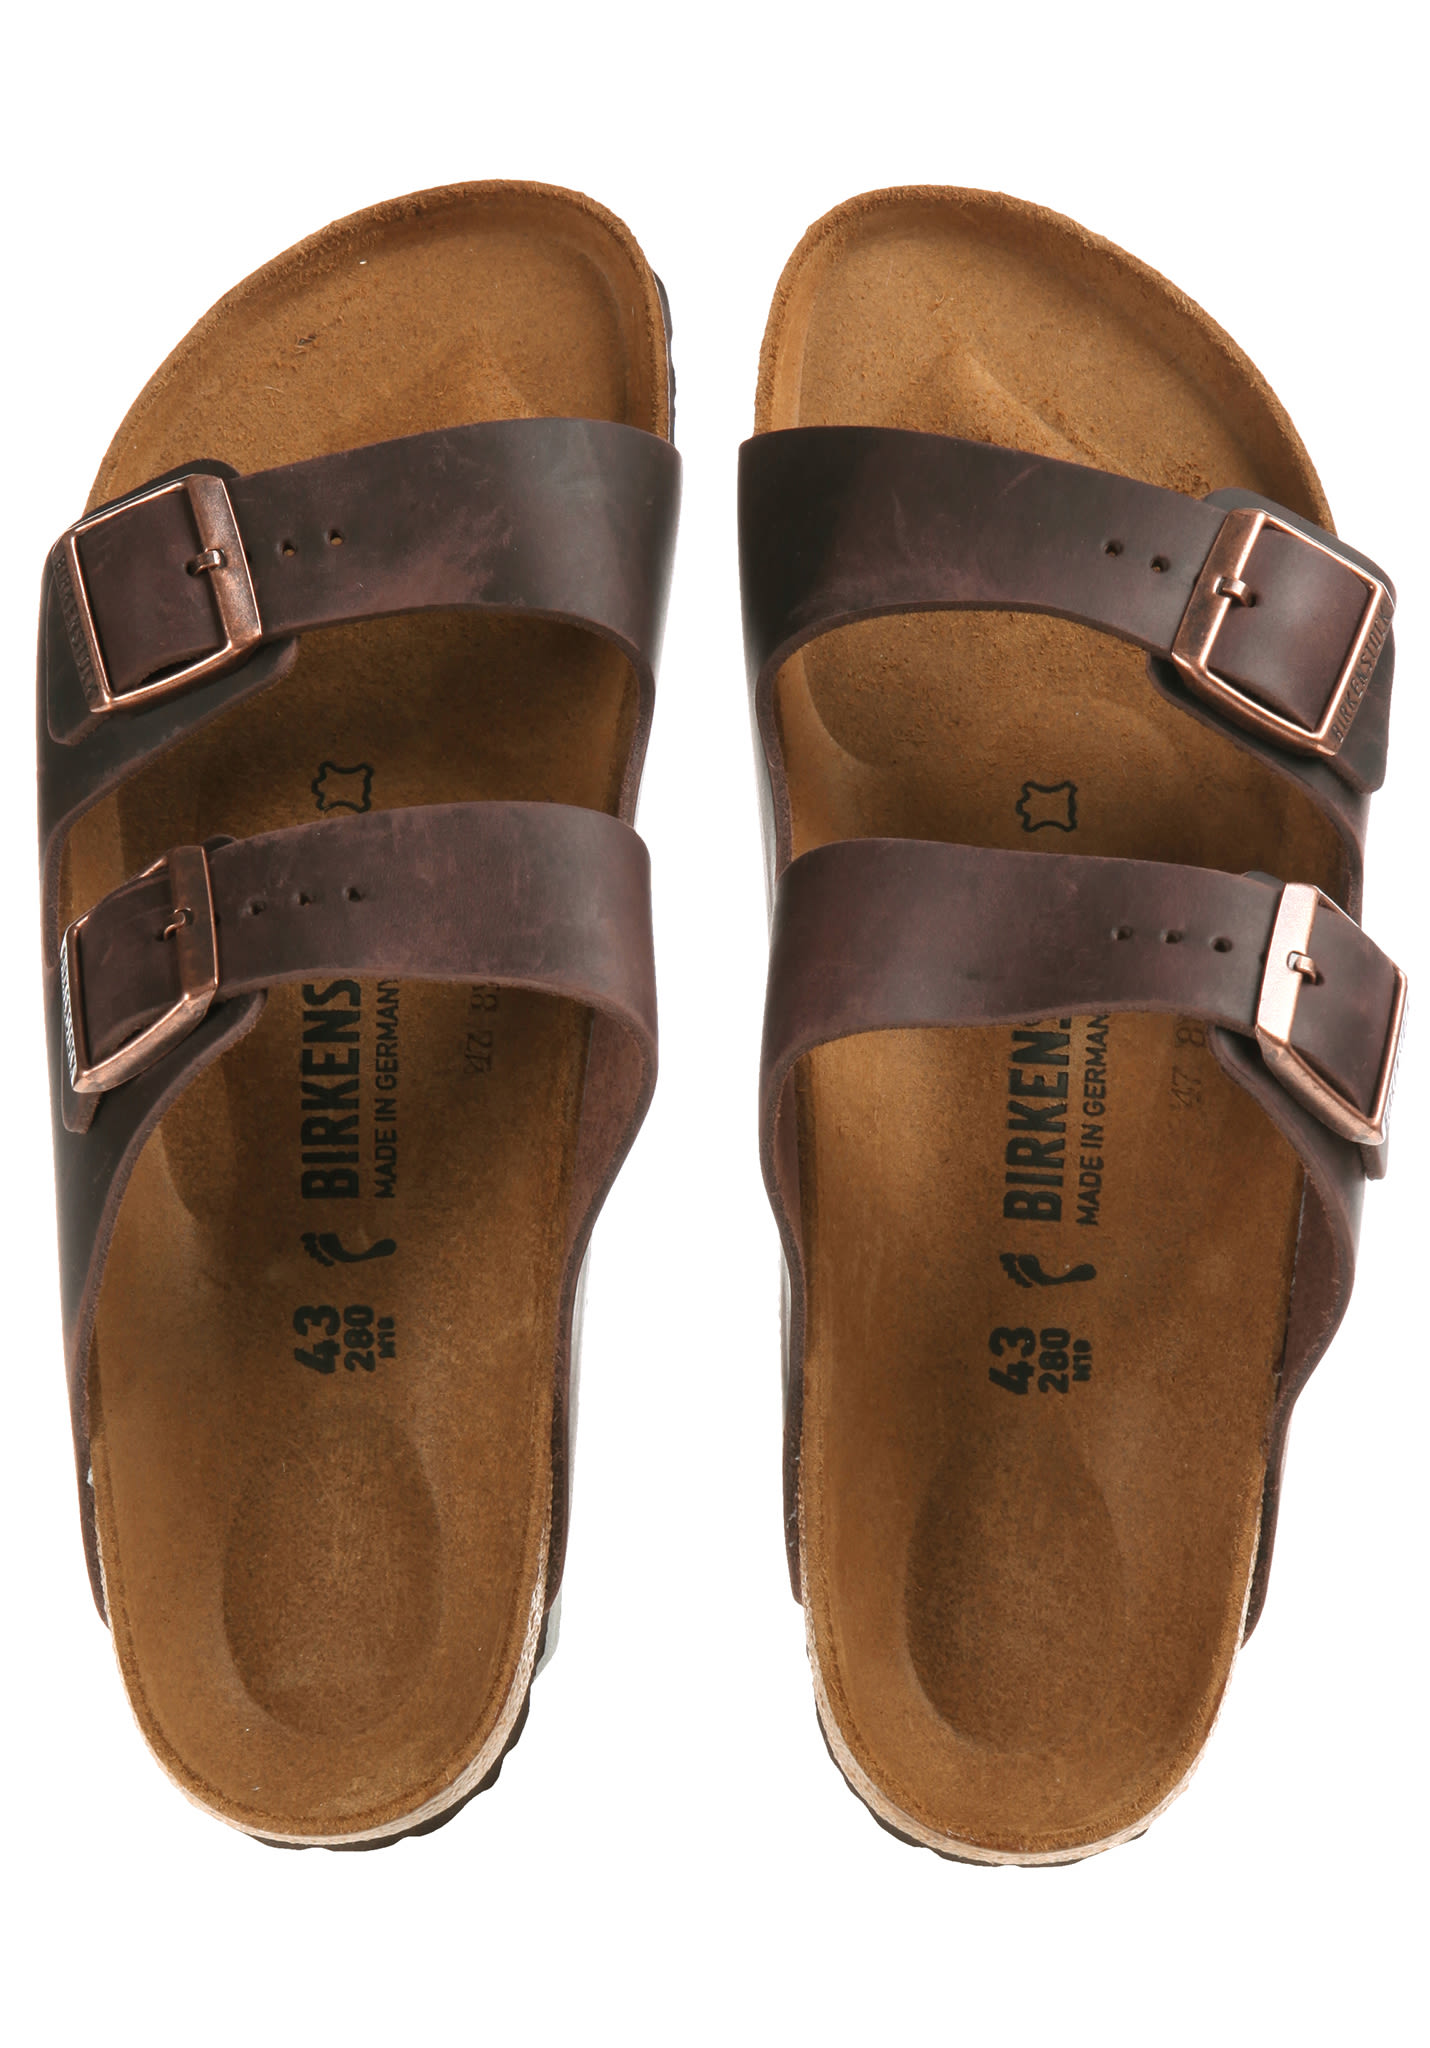 separation shoes 2794b 69736 Birkenstock Arizona FL - Sandalen - Braun